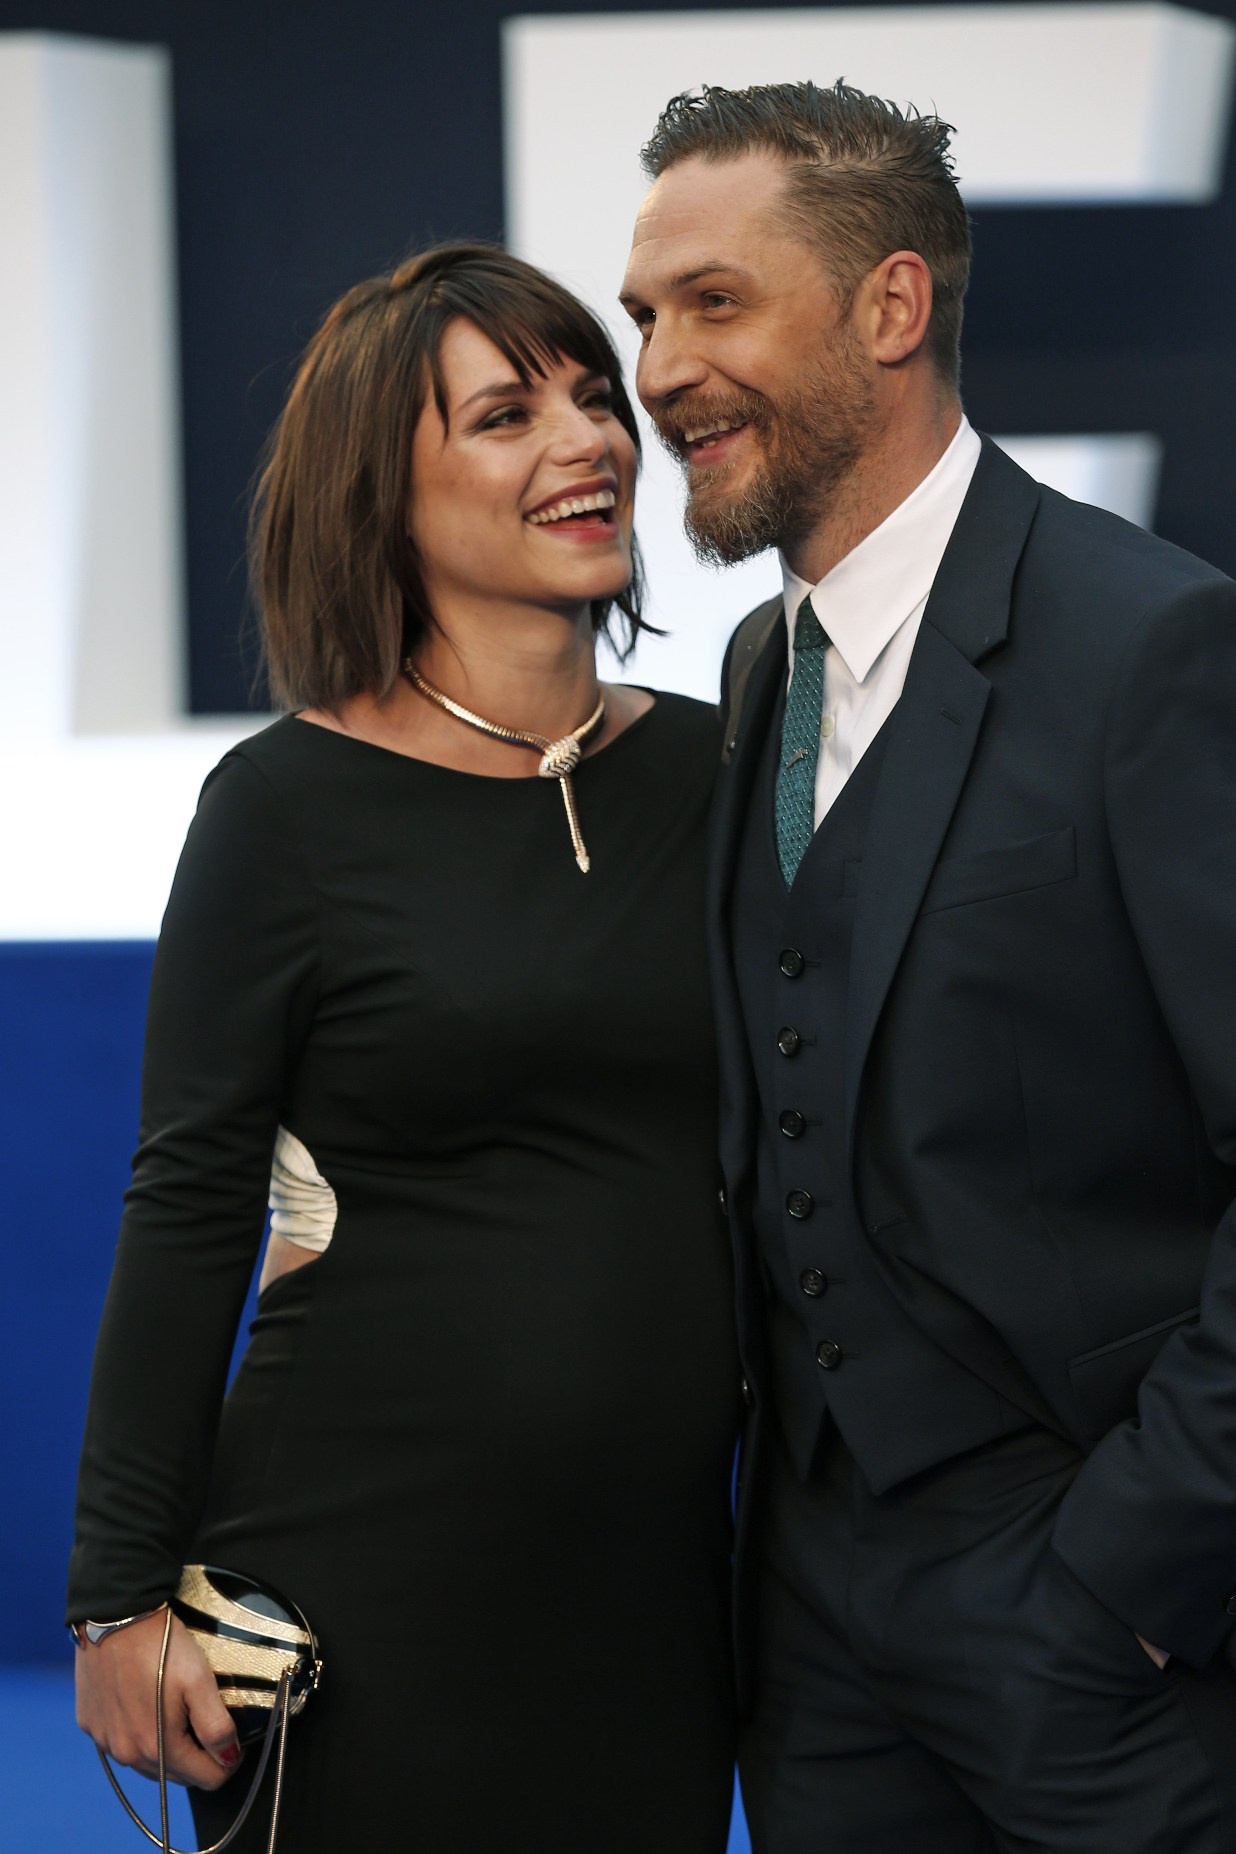 tom_hardy_and_his_wife_charlotte_riley_p